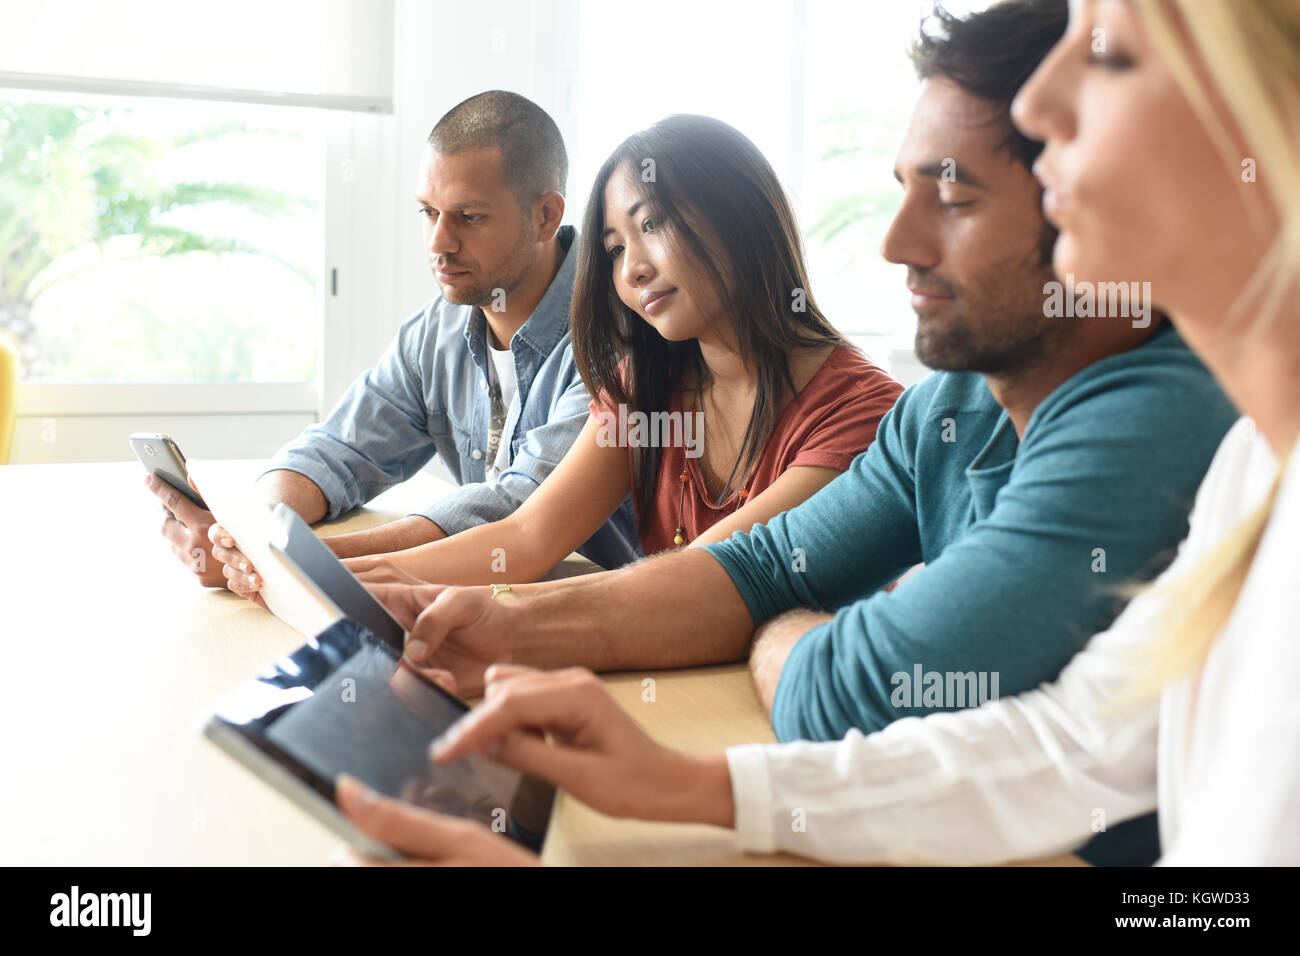 Start-up business people meeting with tablets and smartphones - Stock Image